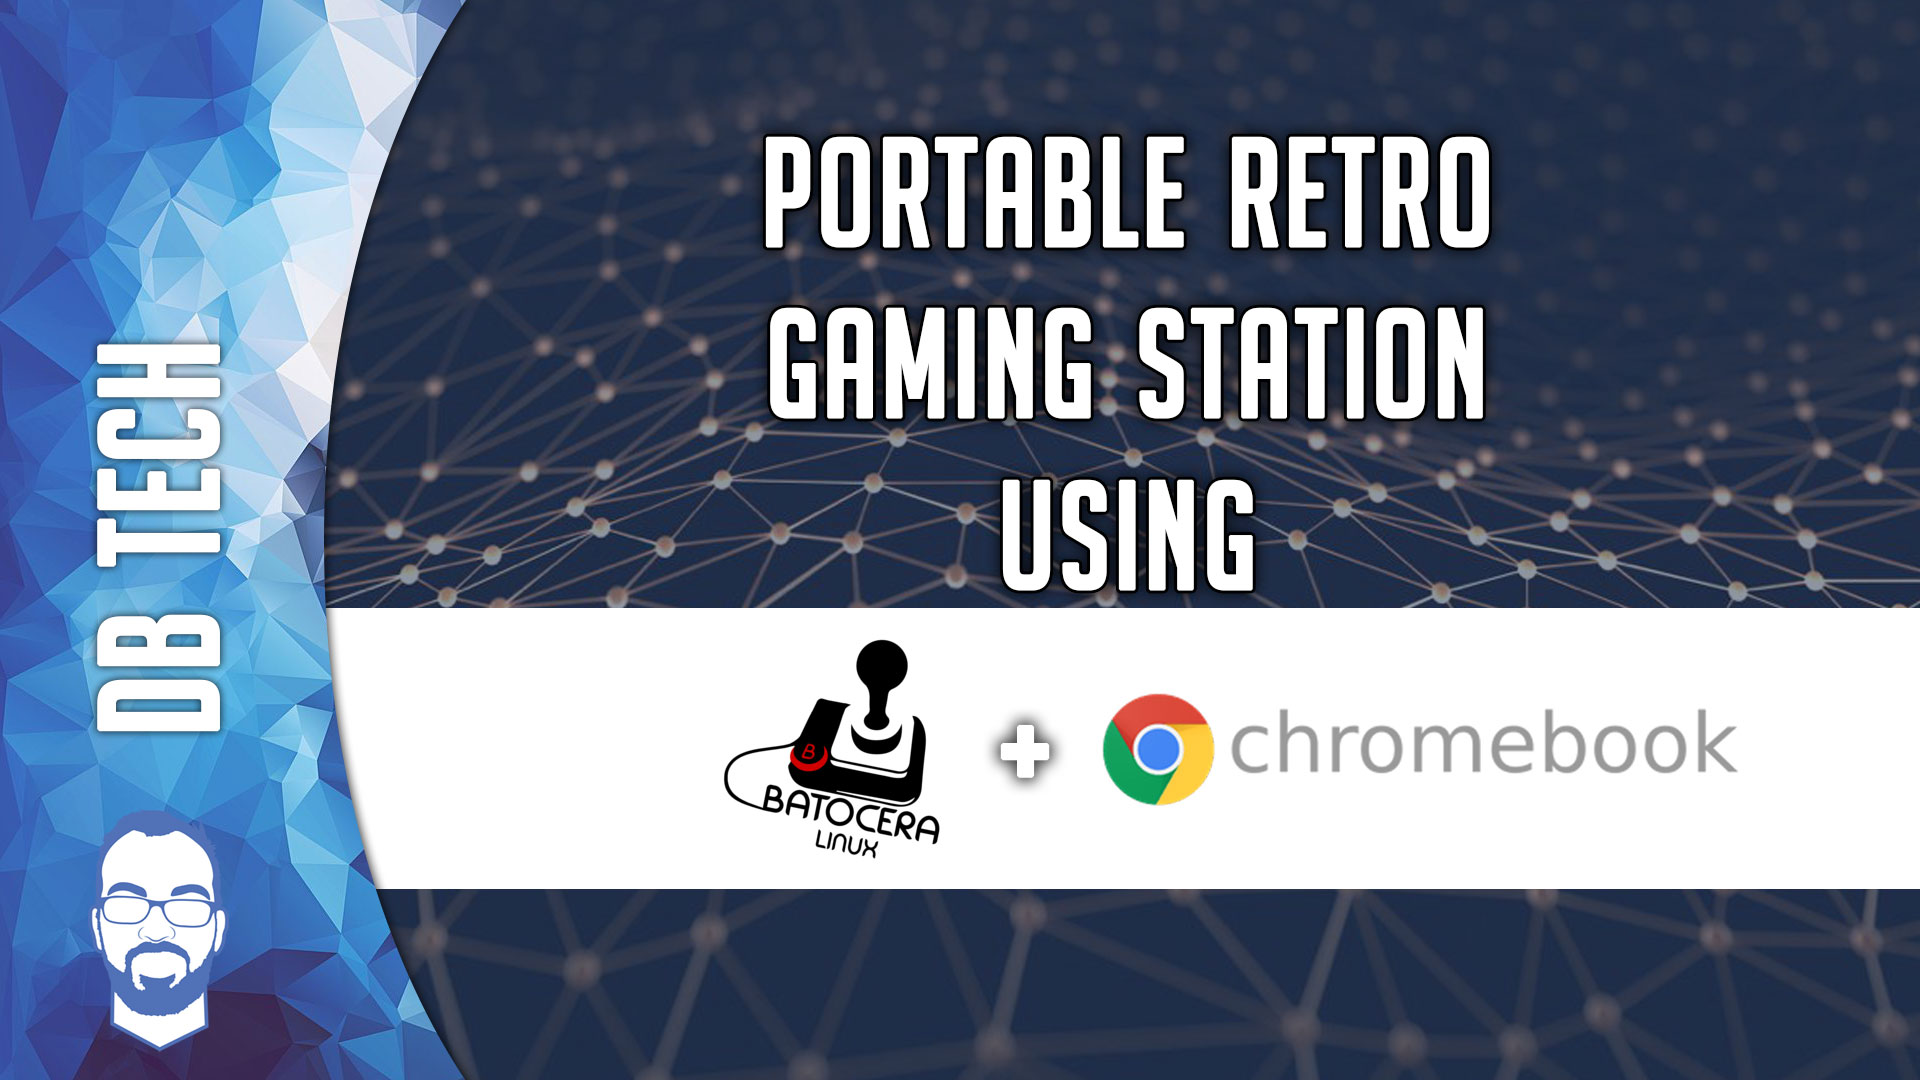 Turn Your Chromebook Into A Portable Retro Gaming Station With